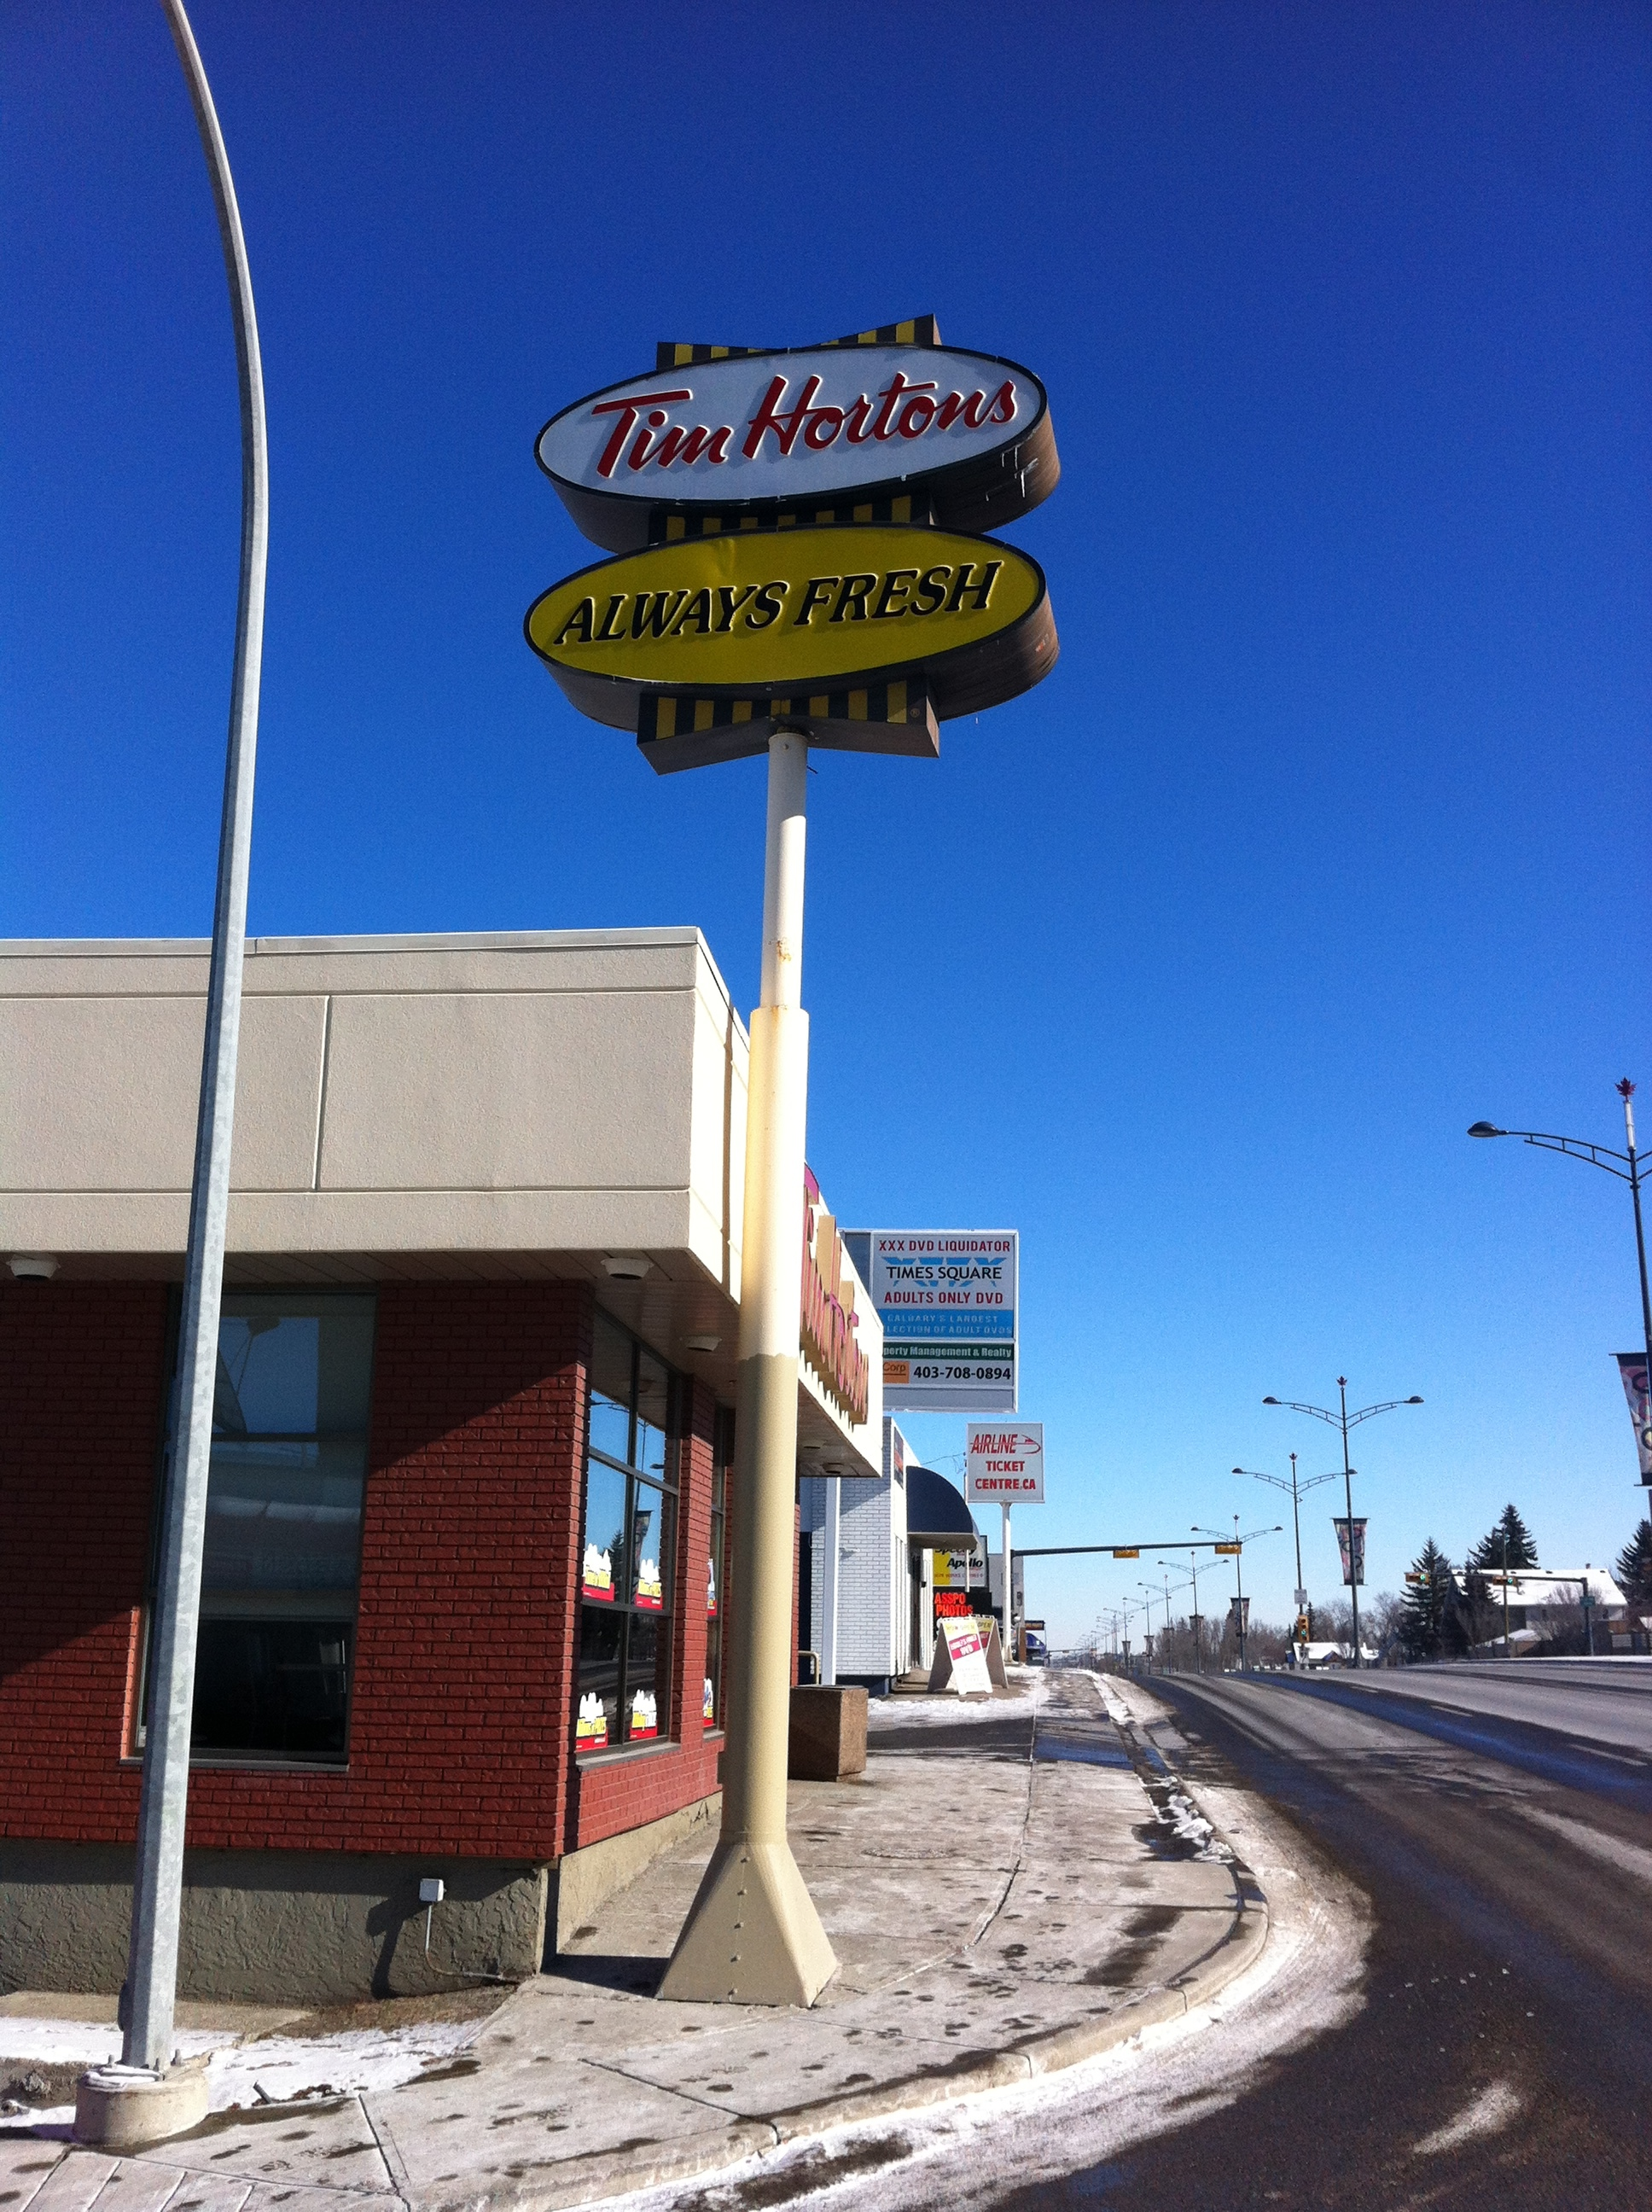 It wouldn't be the TransCanada Highway without at least one Tim Hortons!